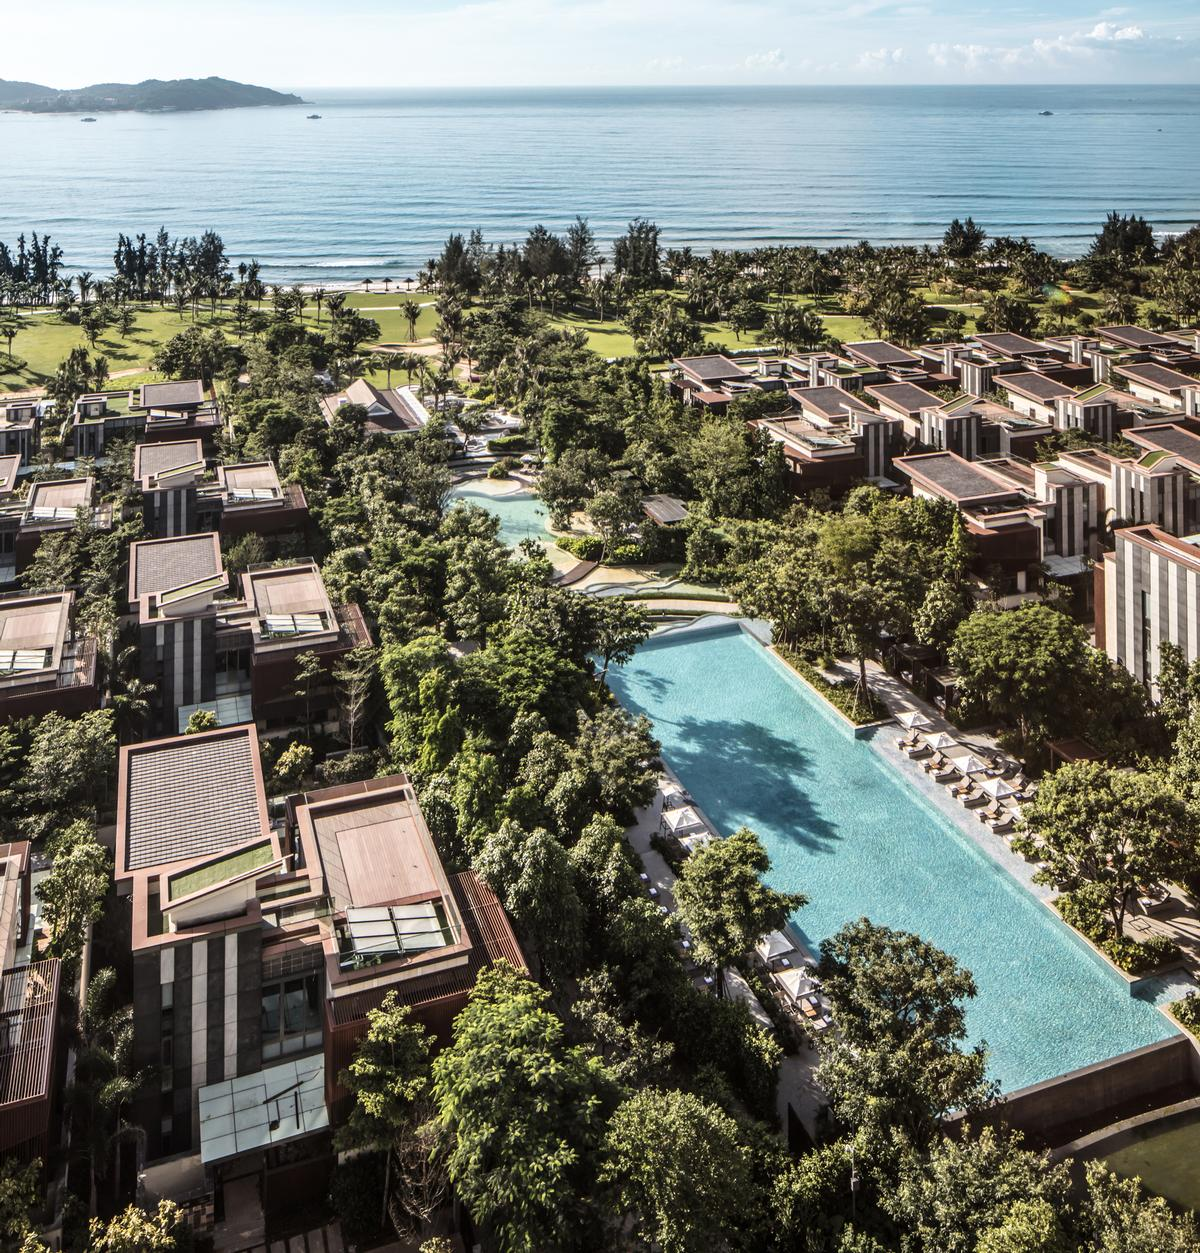 Rosewood opens first Chinese resort in Hainan Bay